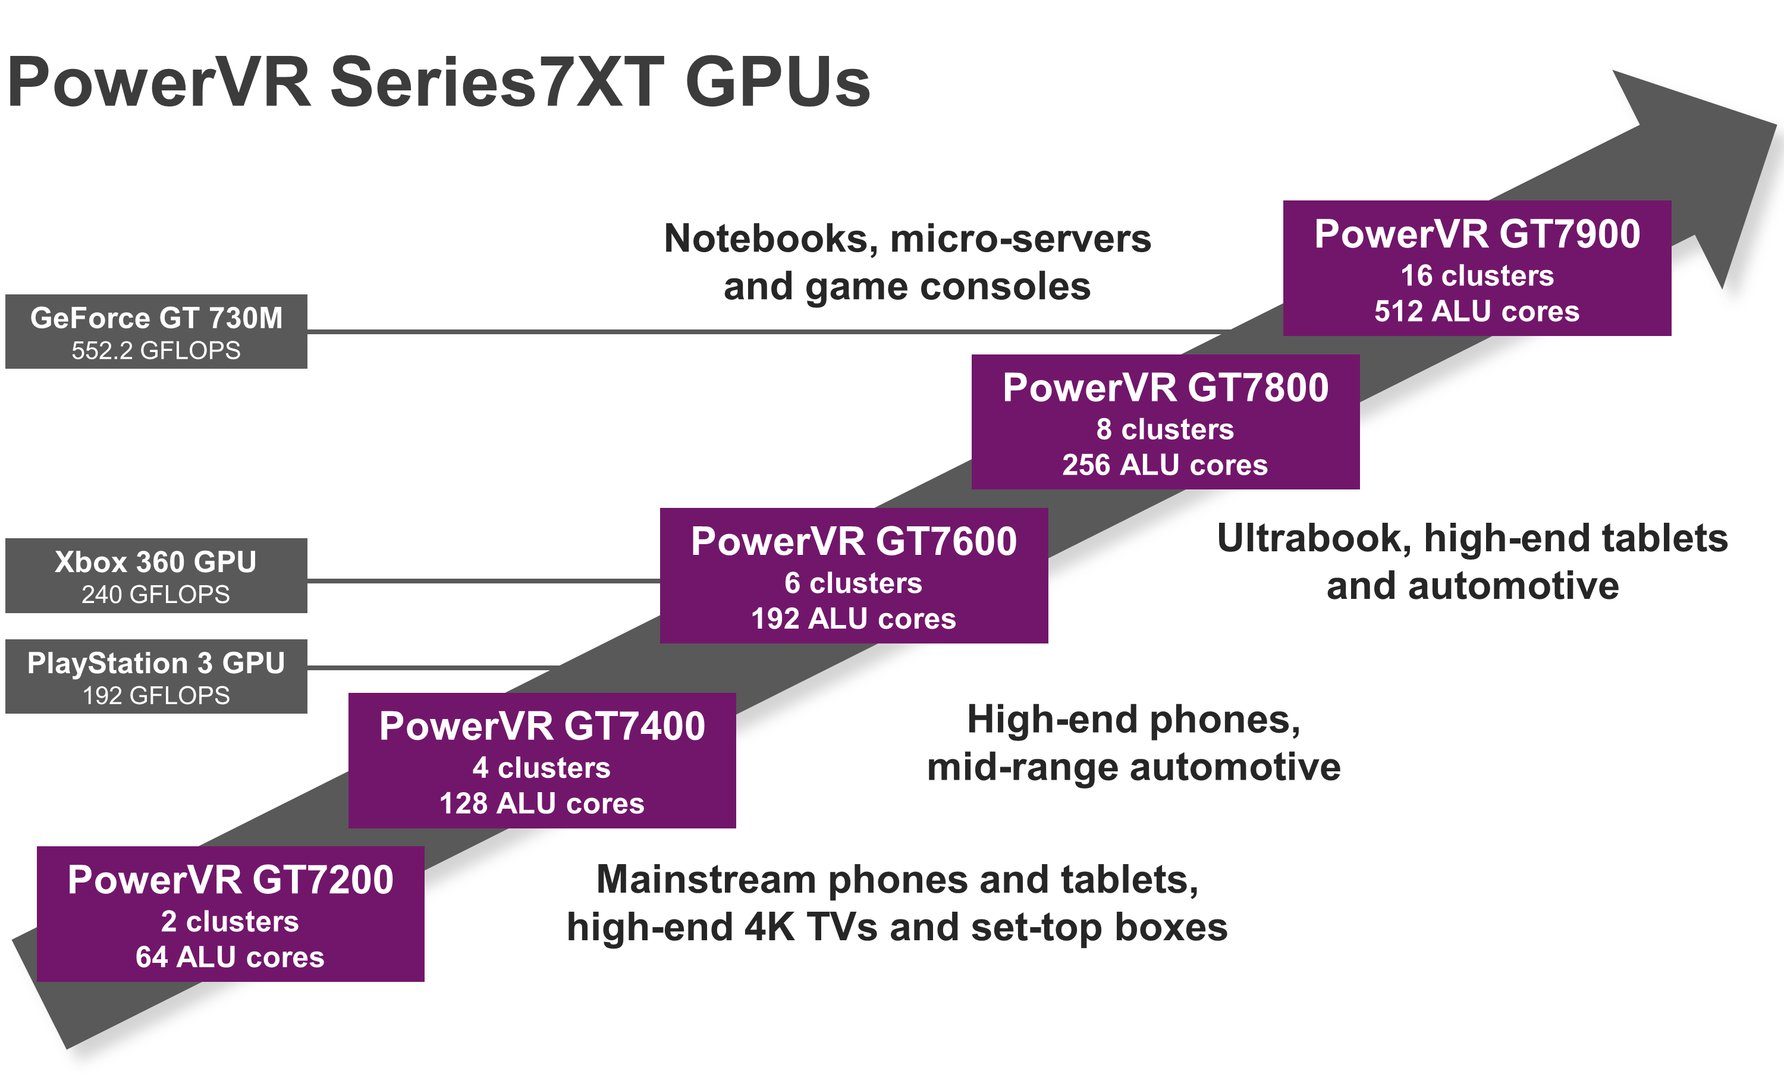 PowerVR Series7XT GPUs